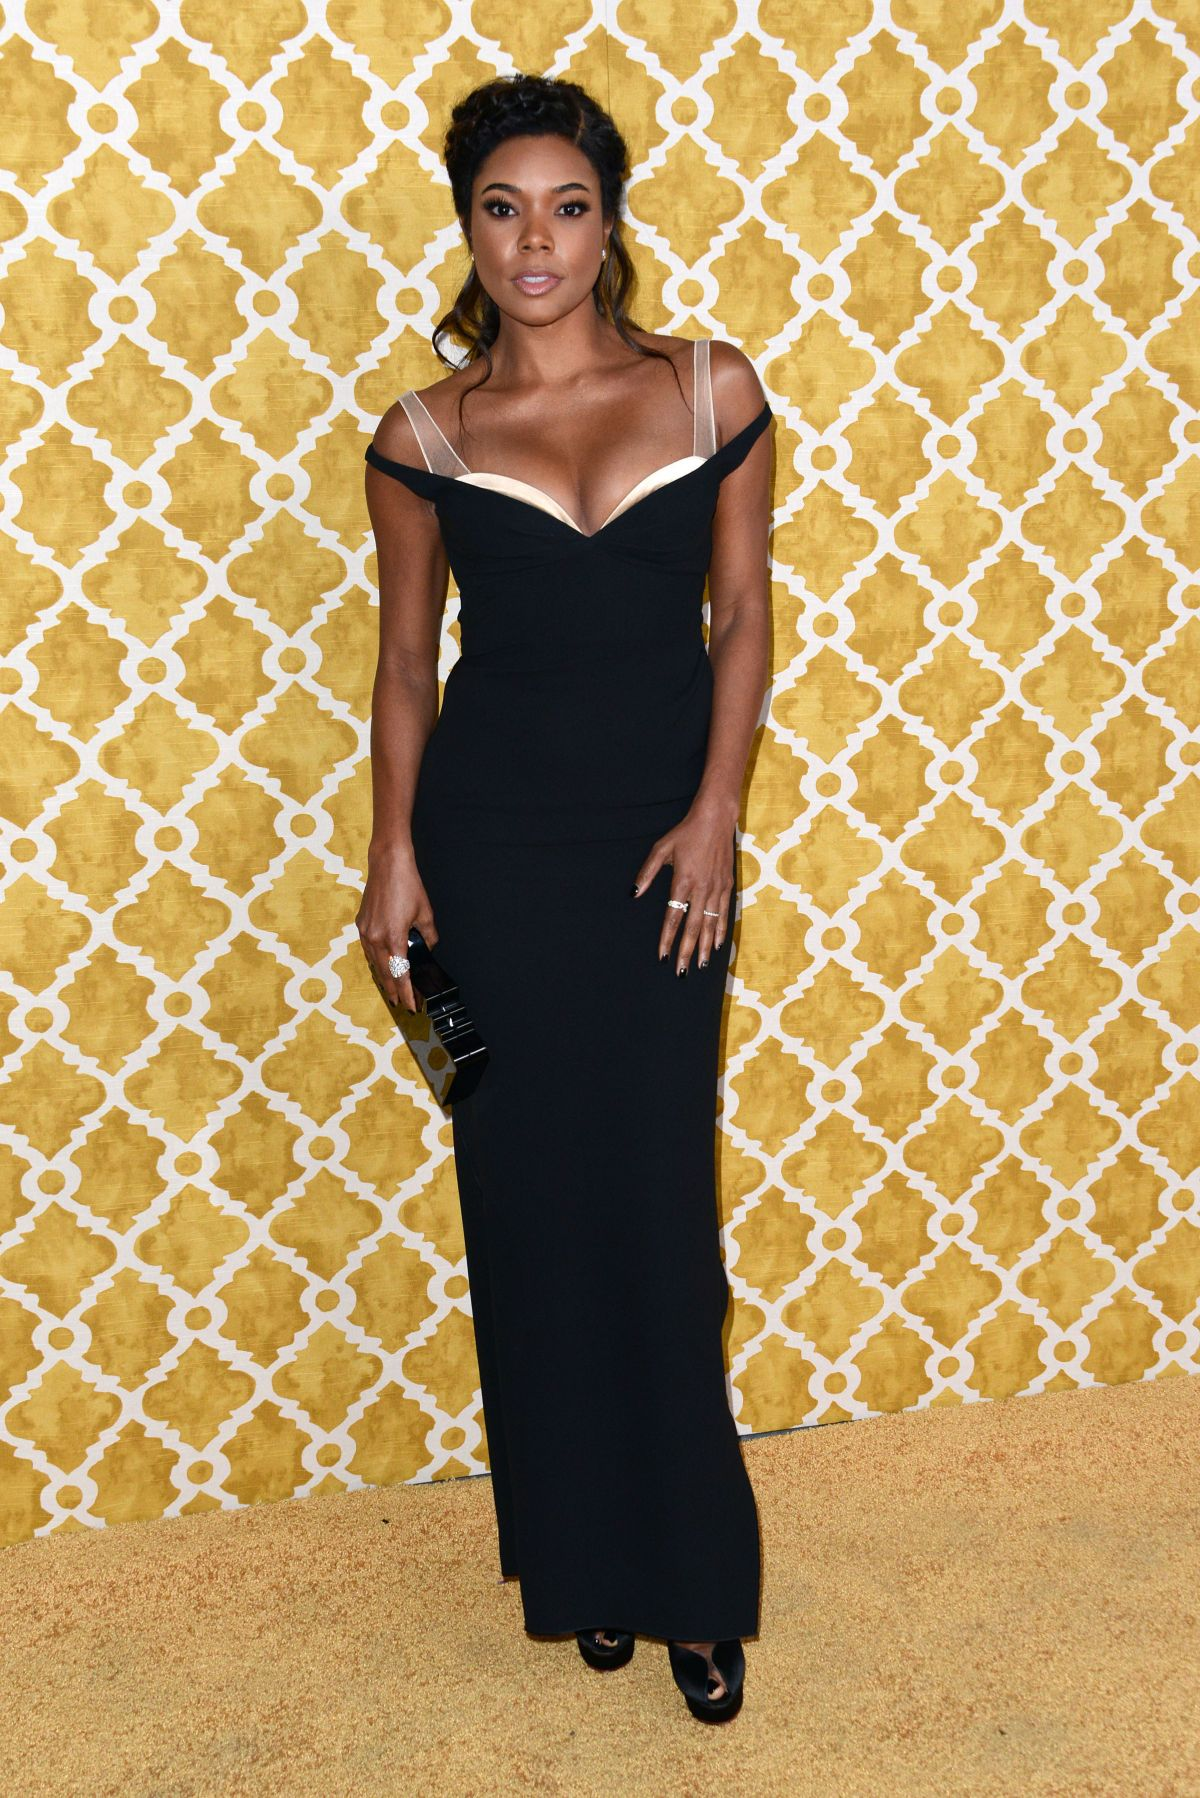 gabrielle-union-at-confirmation-premiere-at-paramount-studios-in-la_3